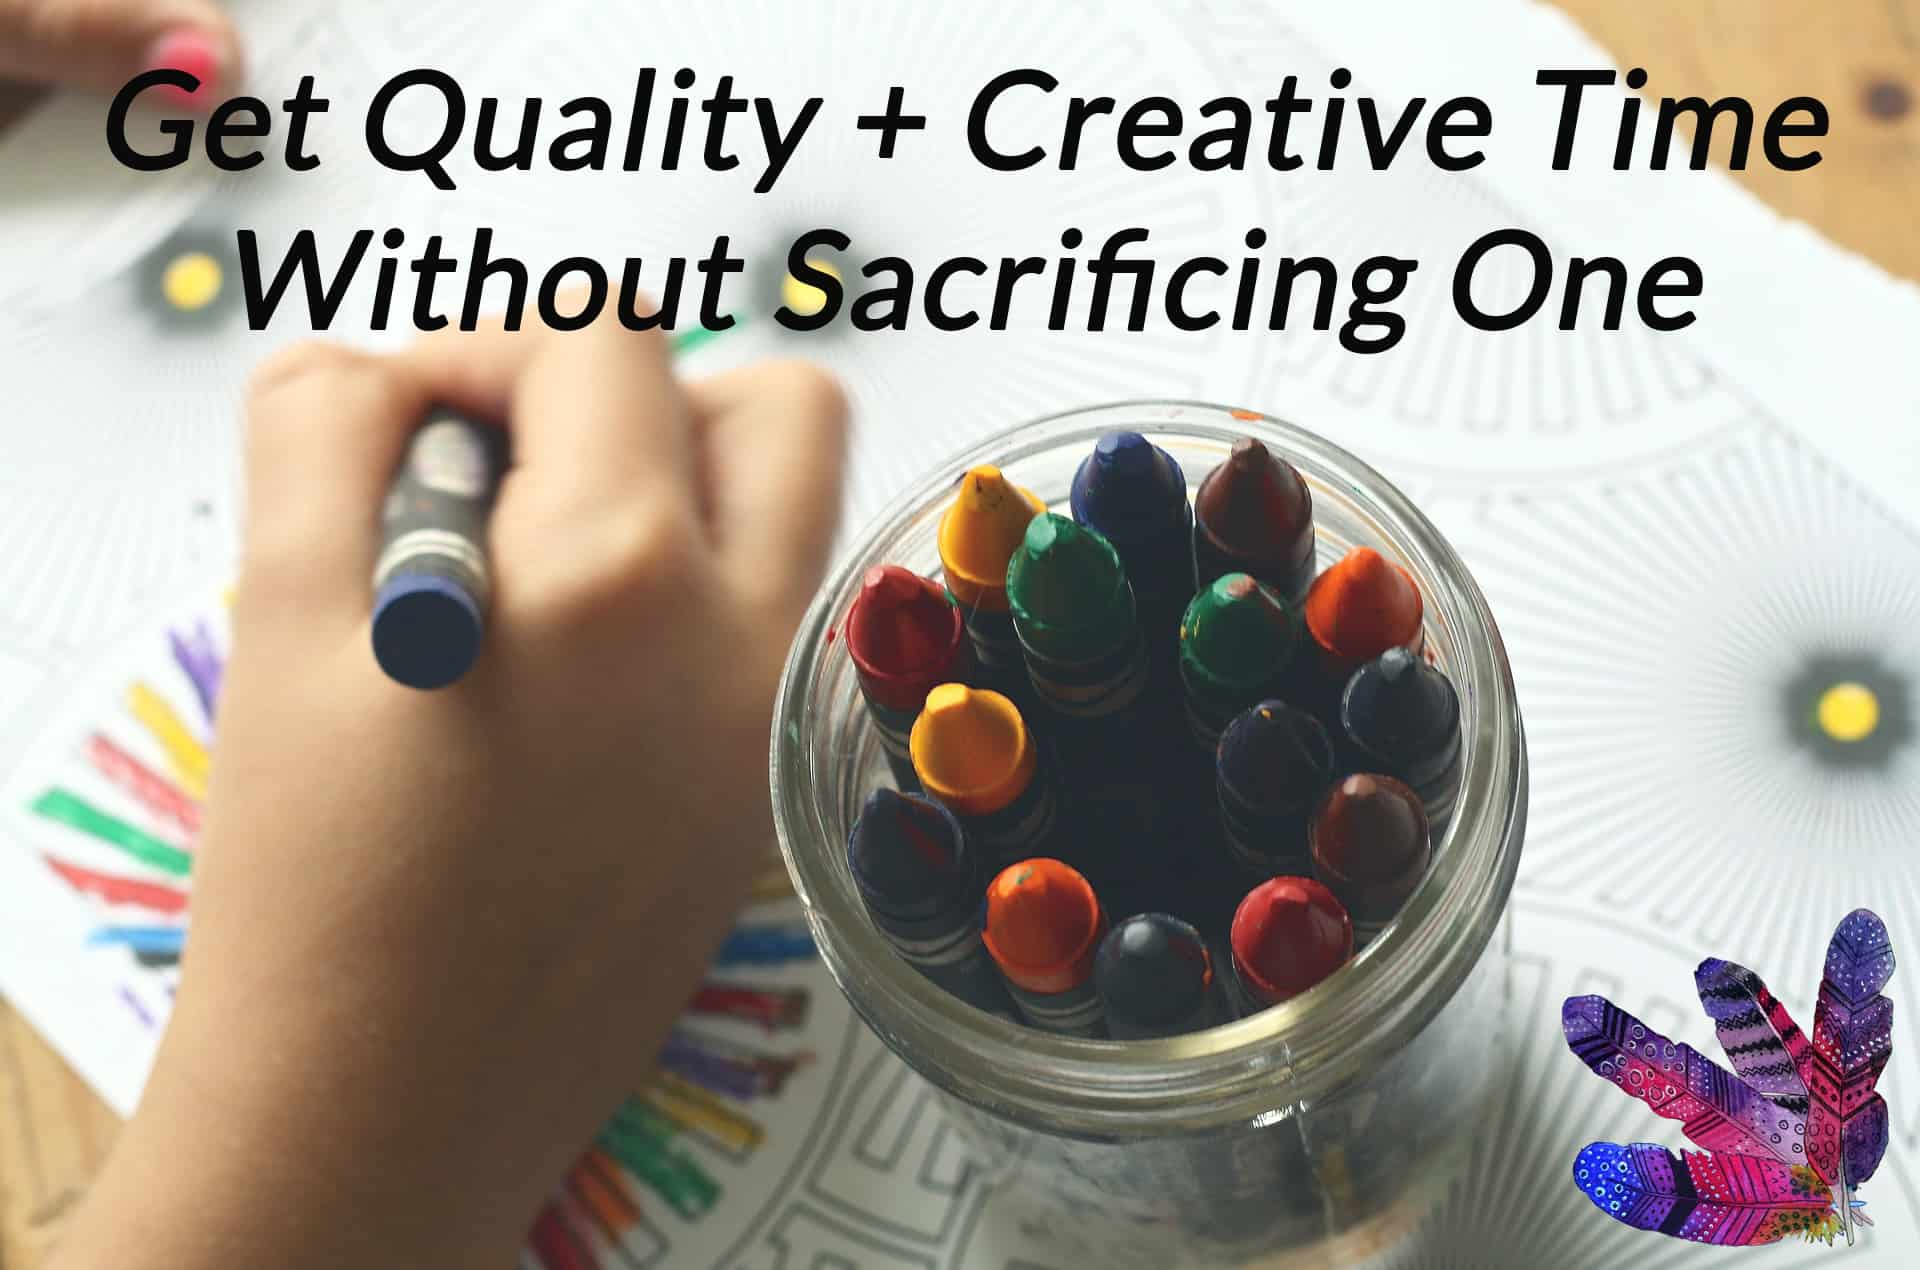 How You Can Have Quality and Creative Time Without Sacrificing 1